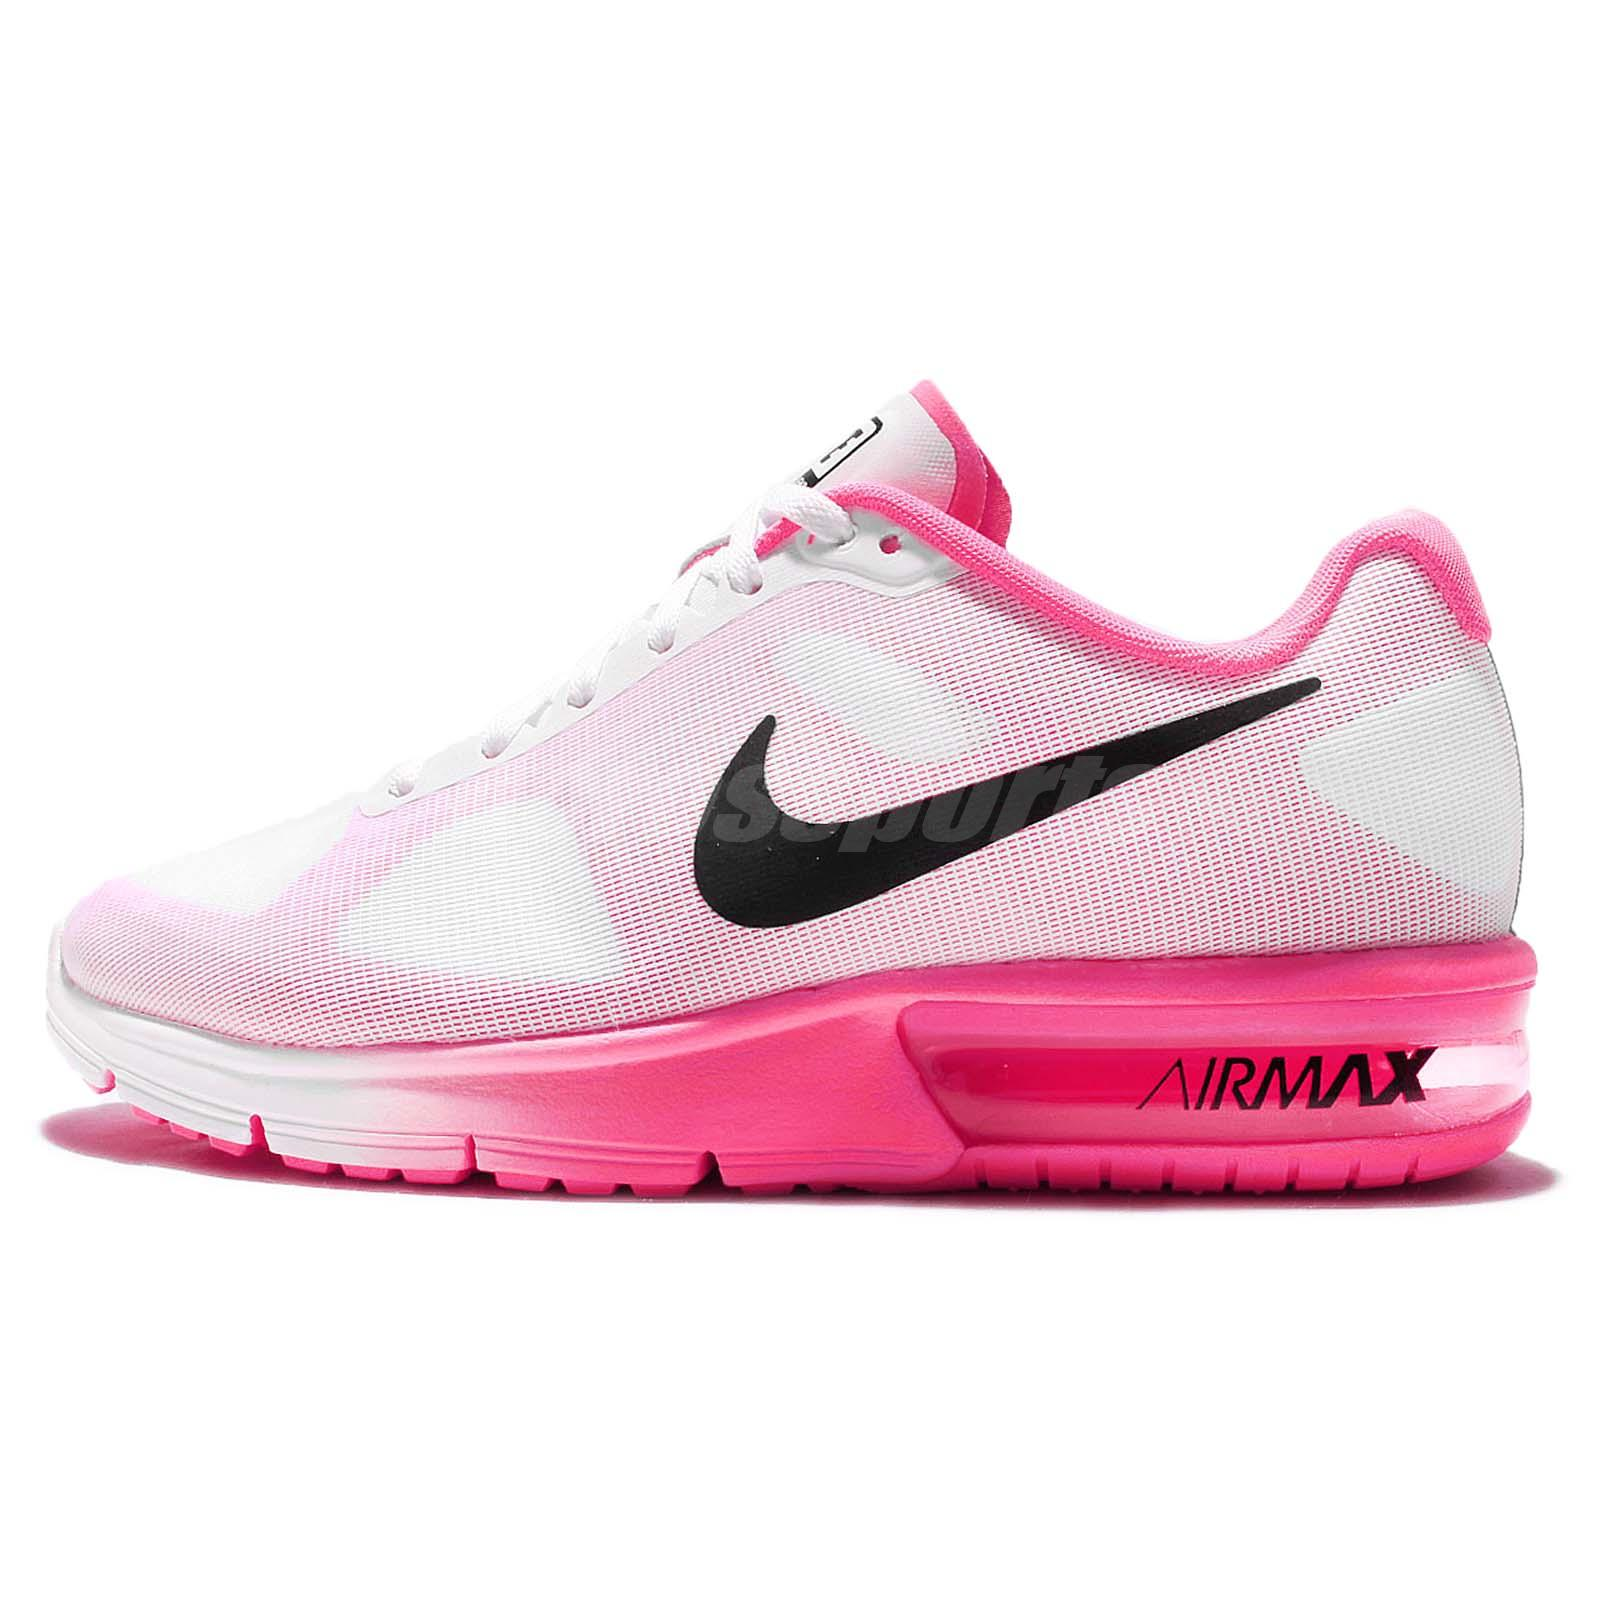 wmns nike air max sequent white pink black womens running